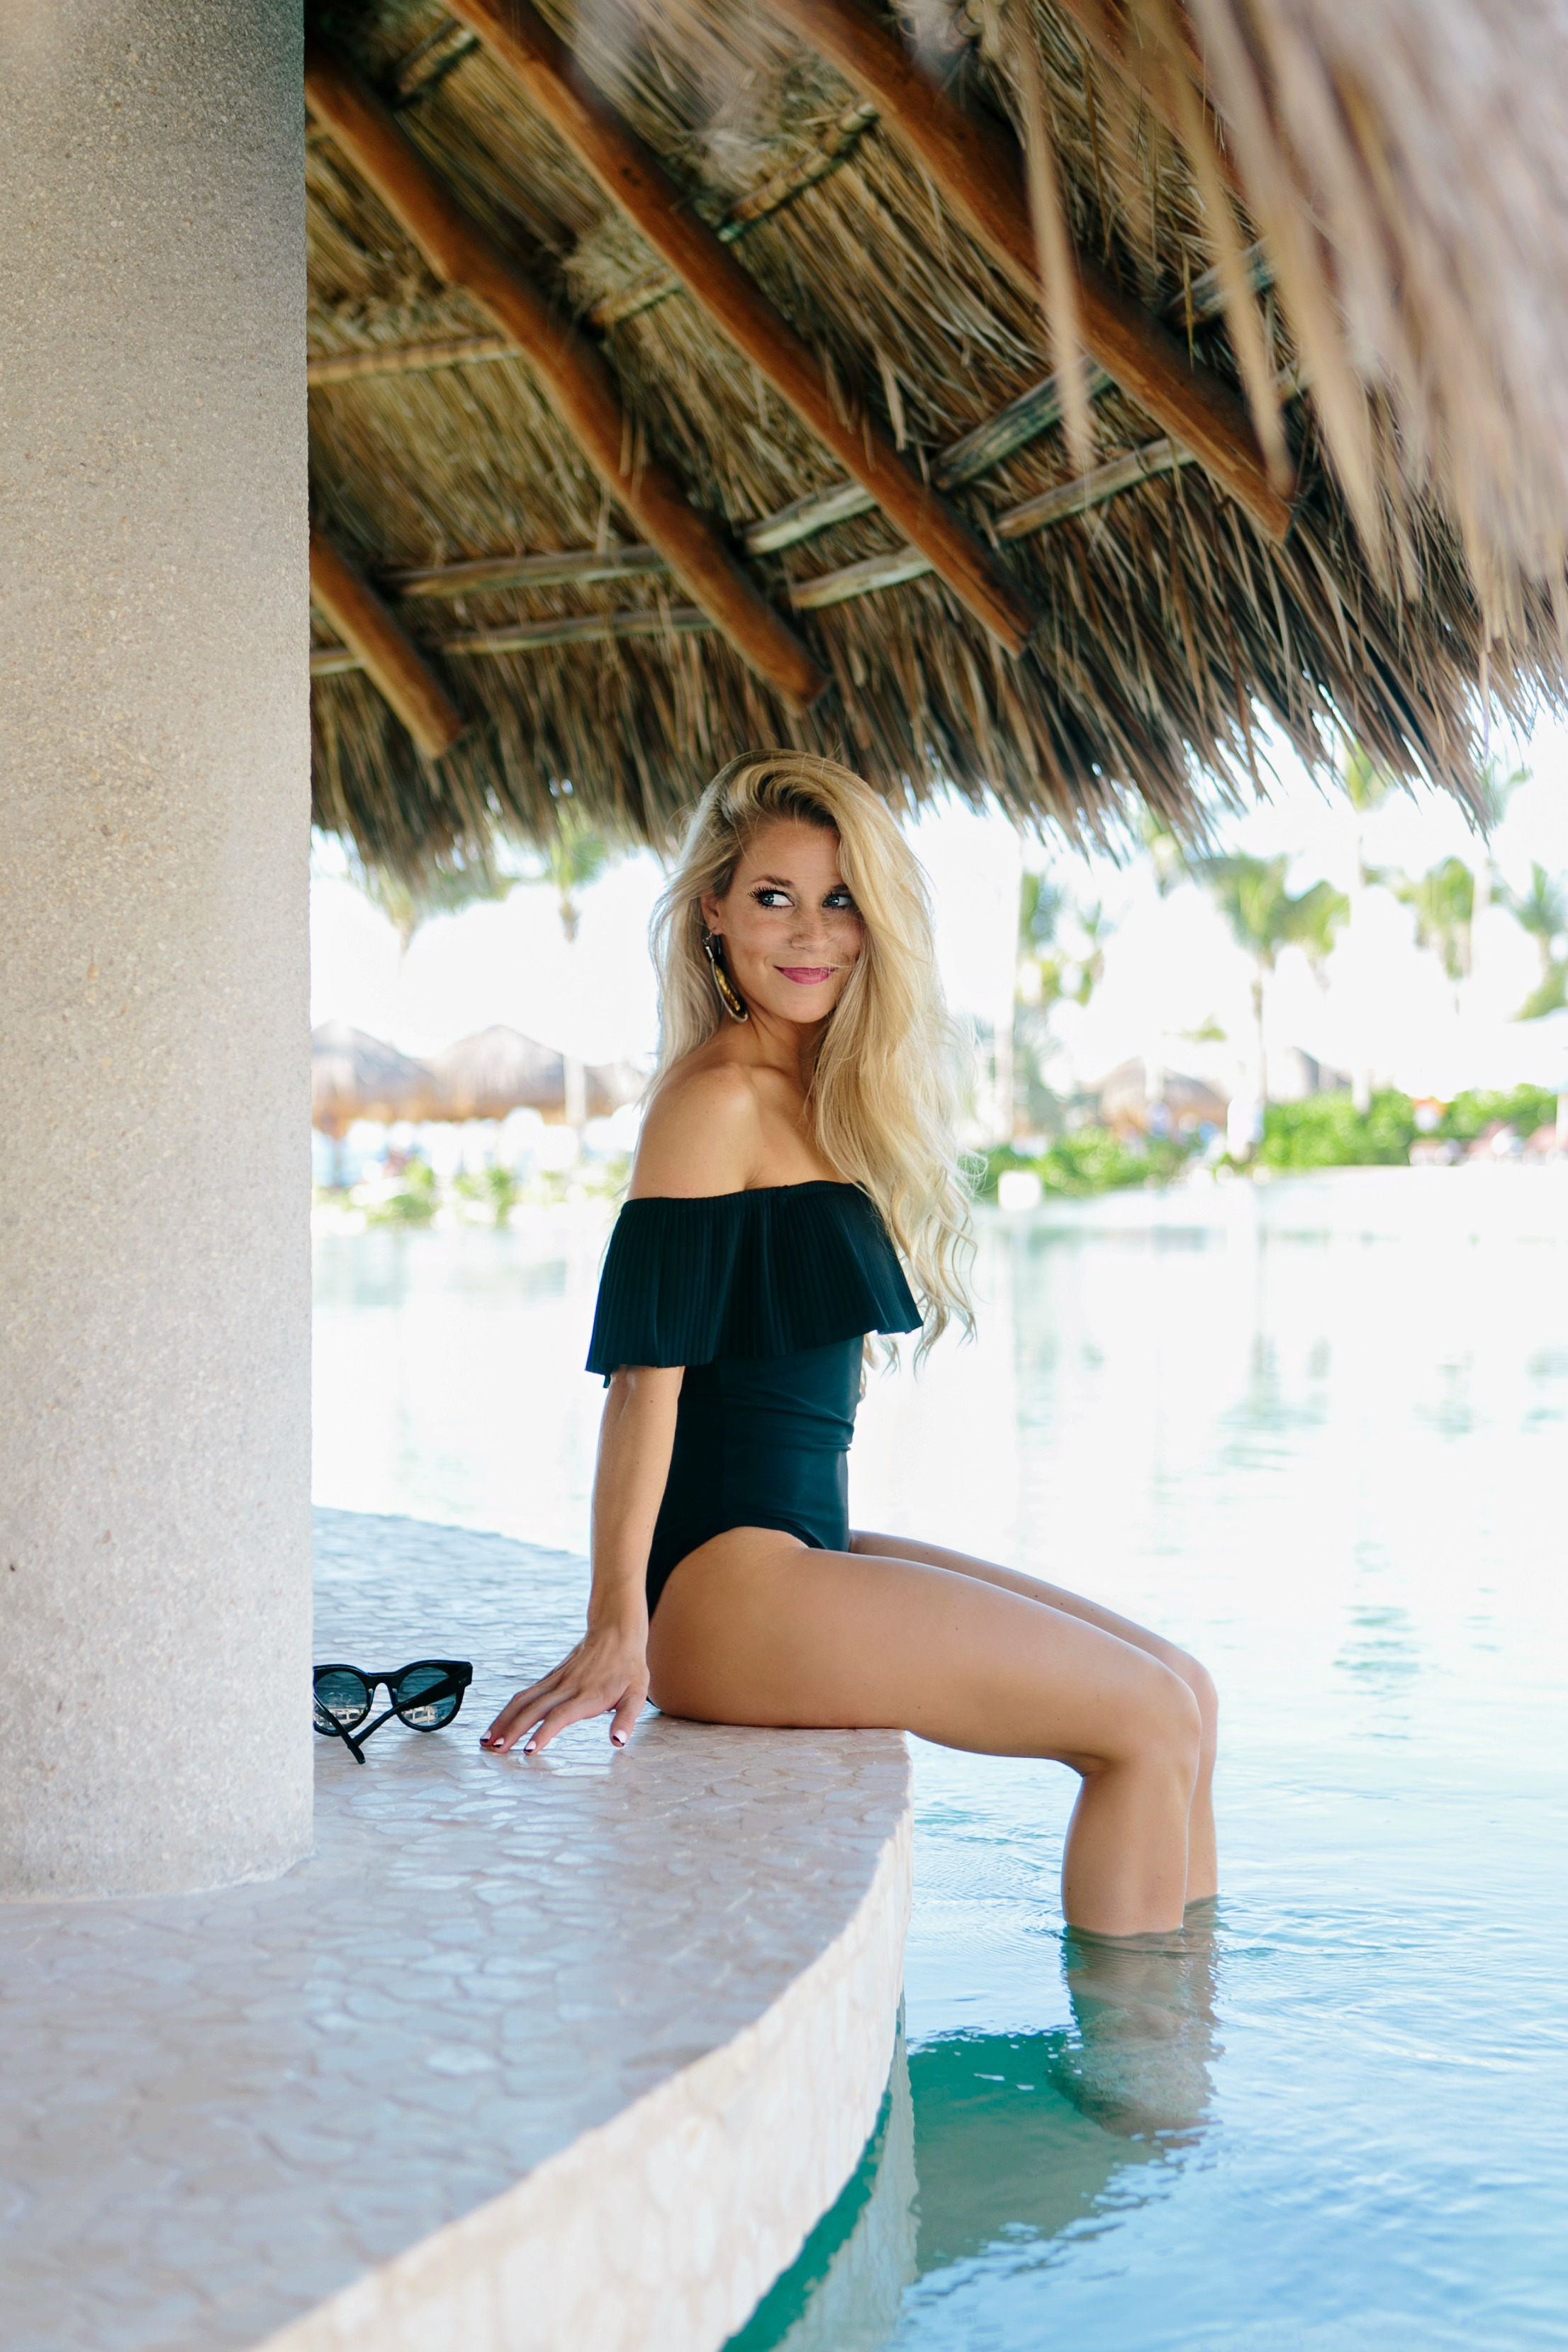 Wear it two ways Swimsuit  Bodysuit  Welcome to Olivia Rink